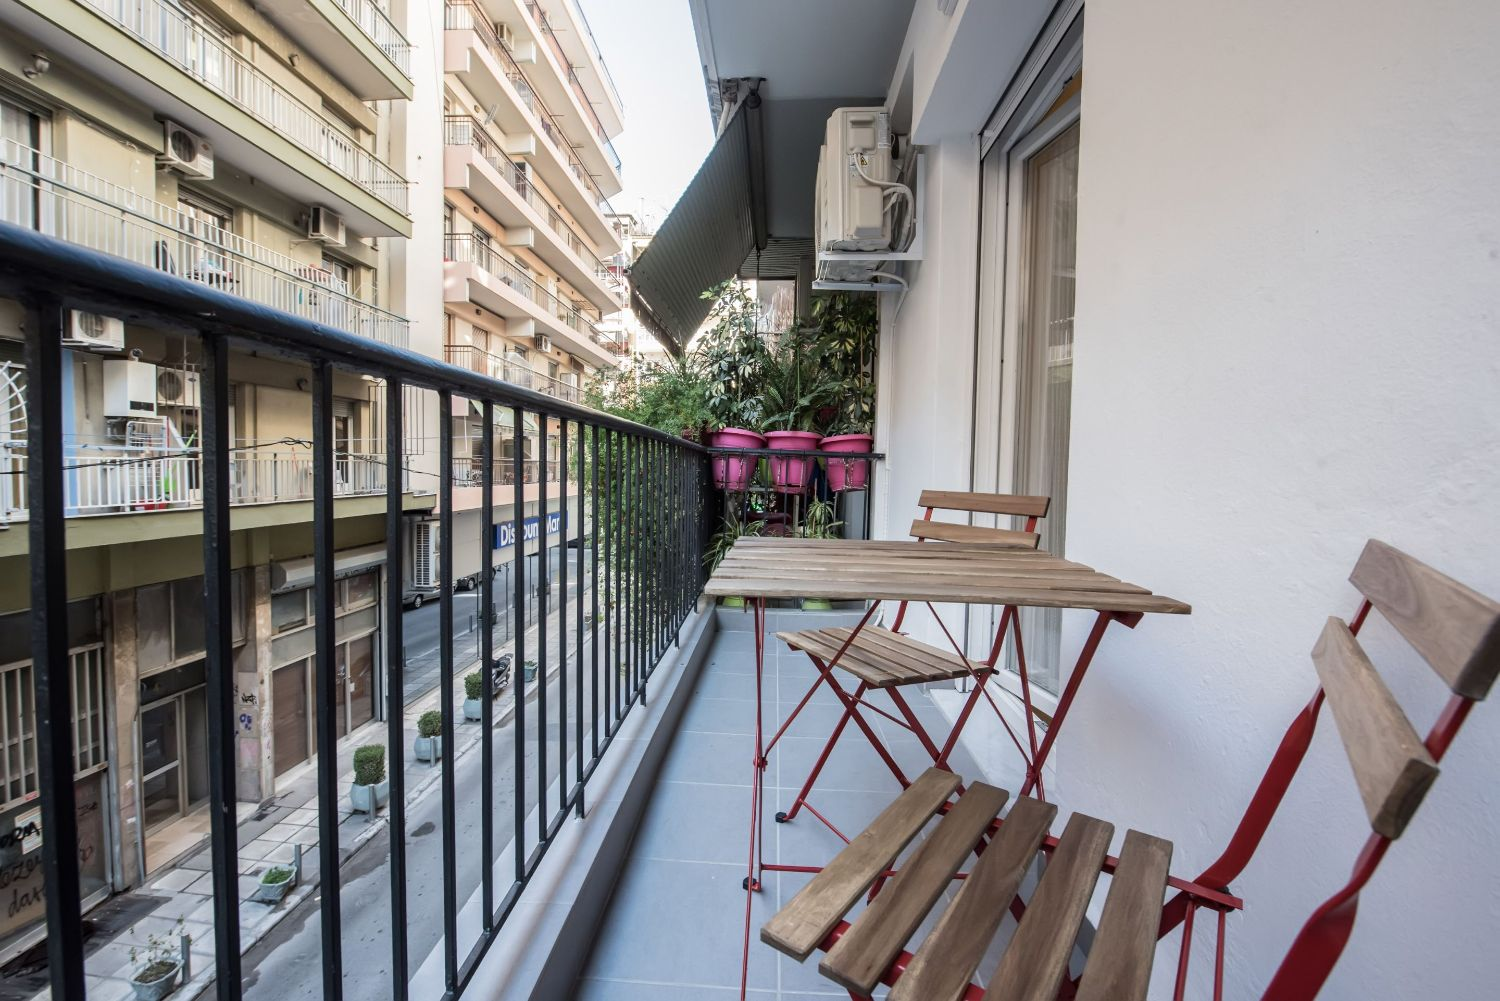 Apartment Balcony with Street View